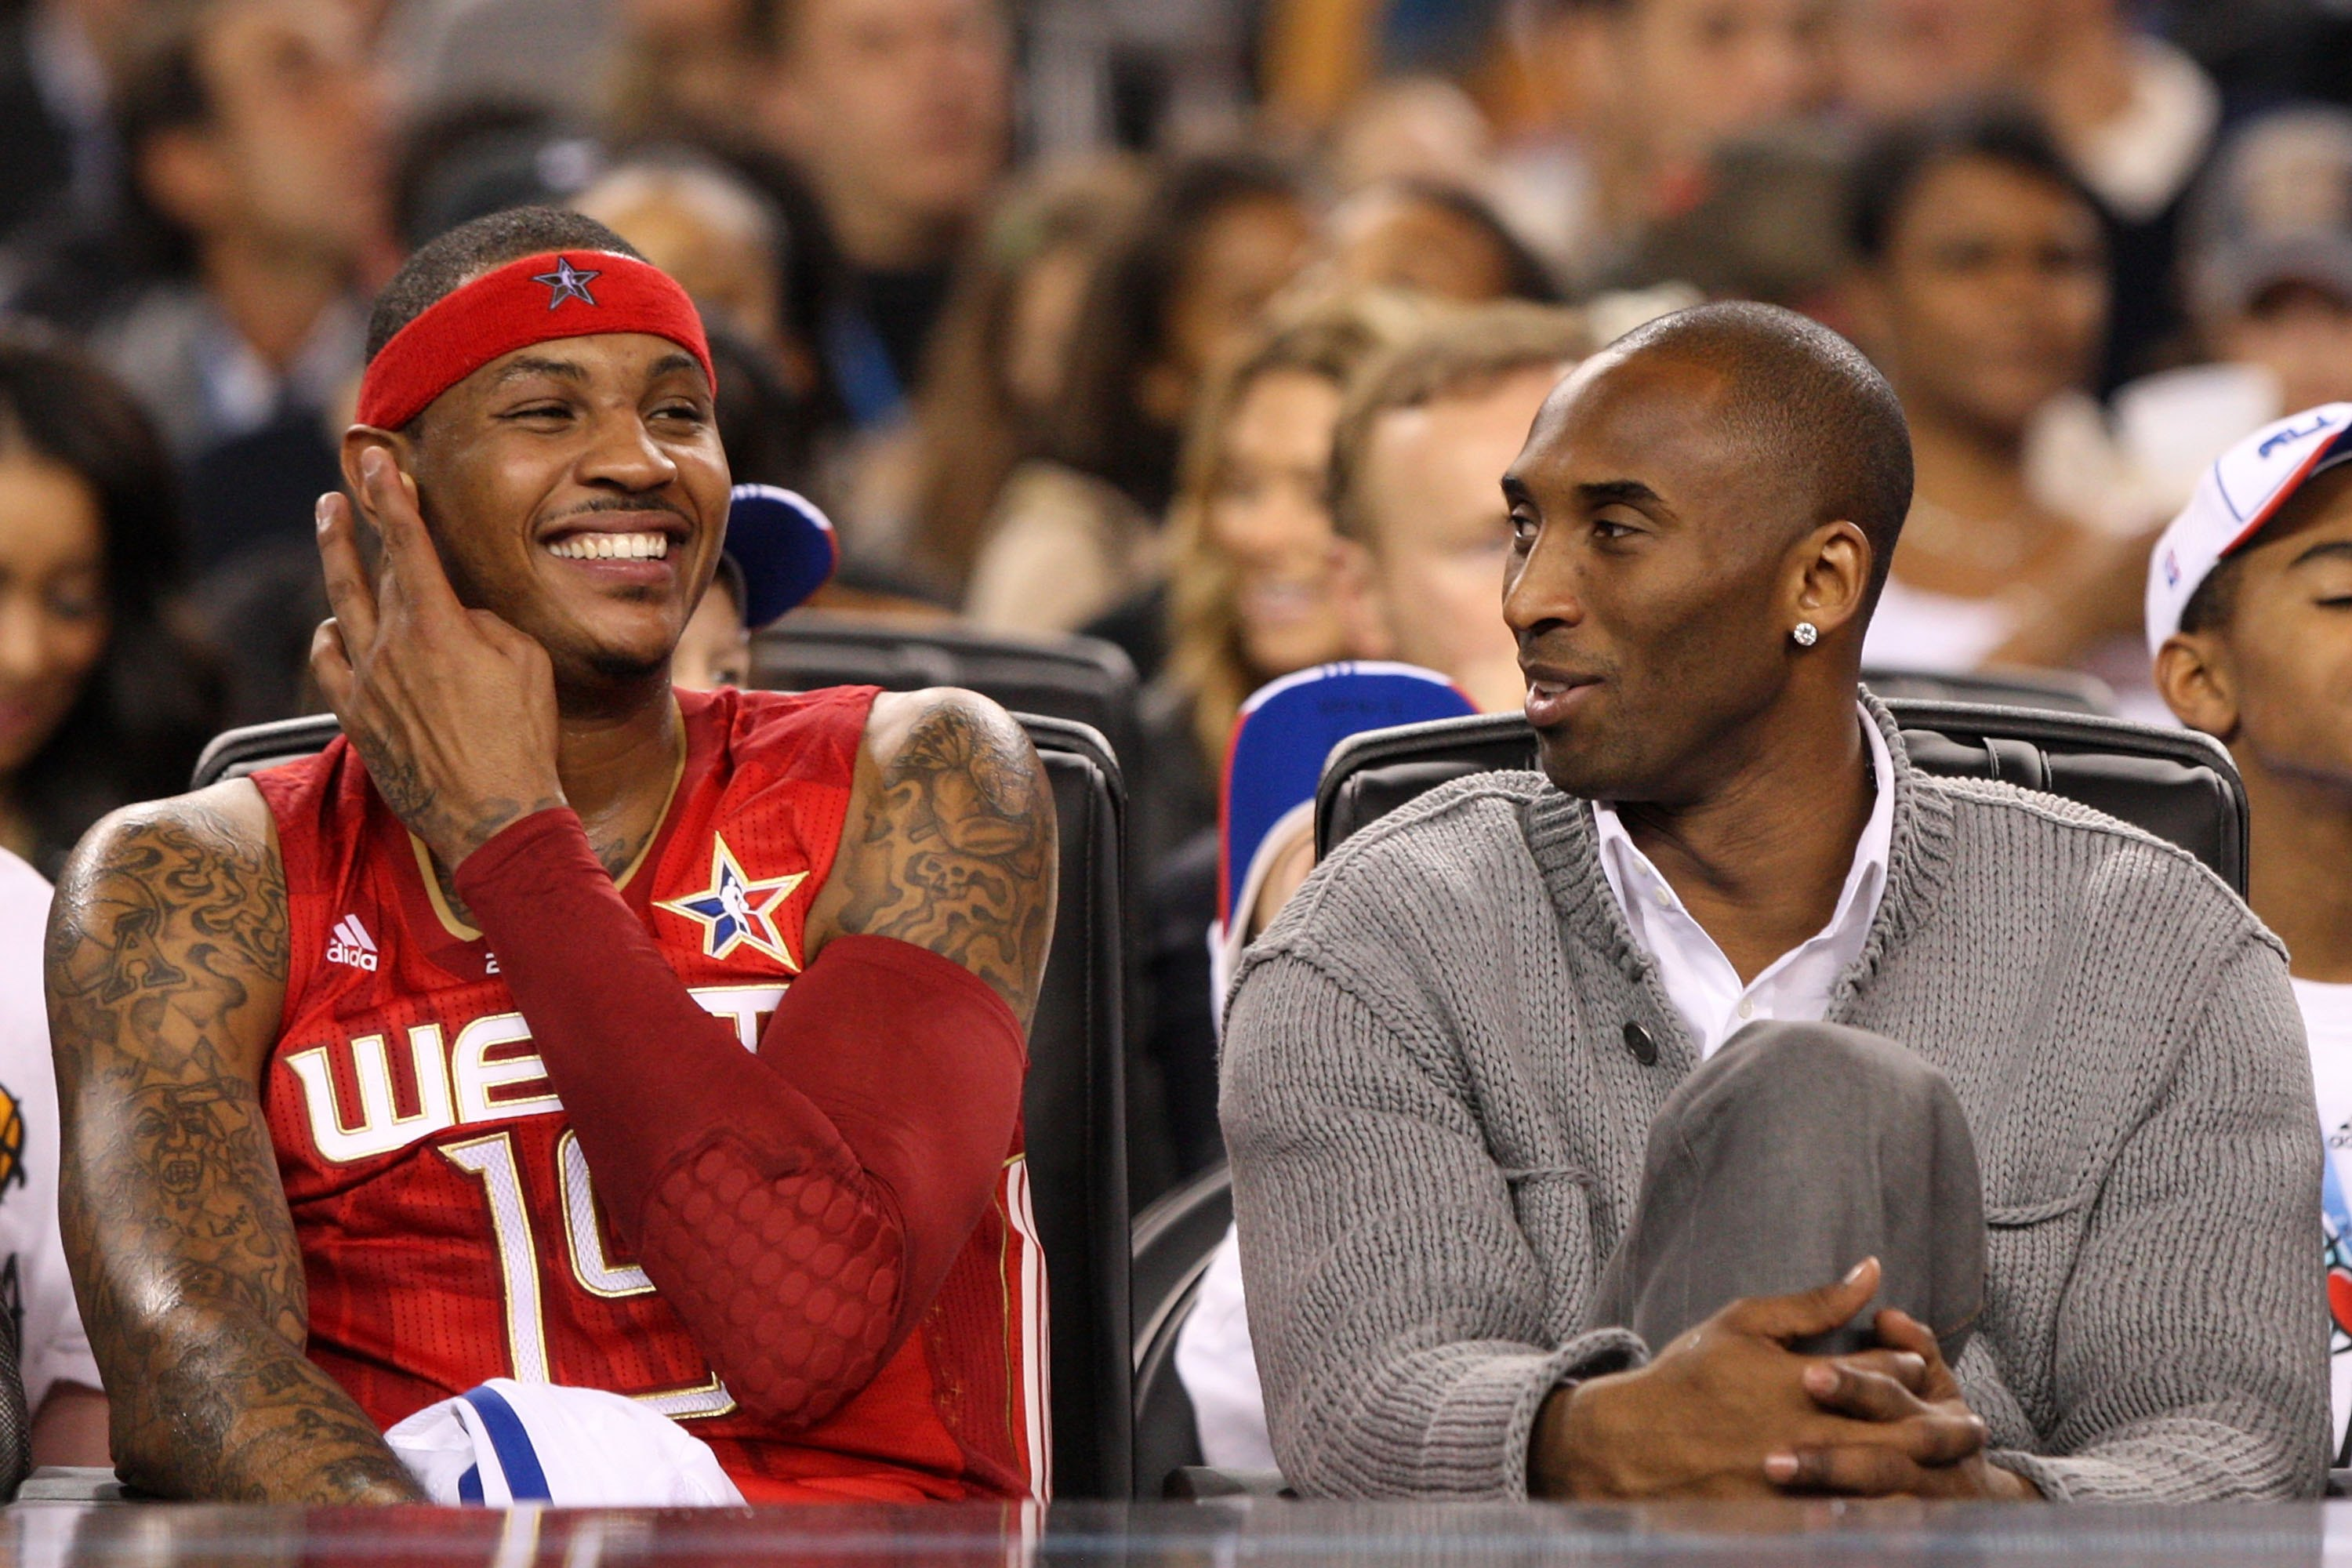 ARLINGTON, TX - FEBRUARY 14:  (L-R) Carmelo Anthony #15 and Kobe Bryant #24 of the Western Conference share a laugh during the NBA All-Star Game, part of 2010 NBA All-Star Weekend at Cowboys Stadium on February 14, 2010 in Arlington, Texas. The Eastern Co